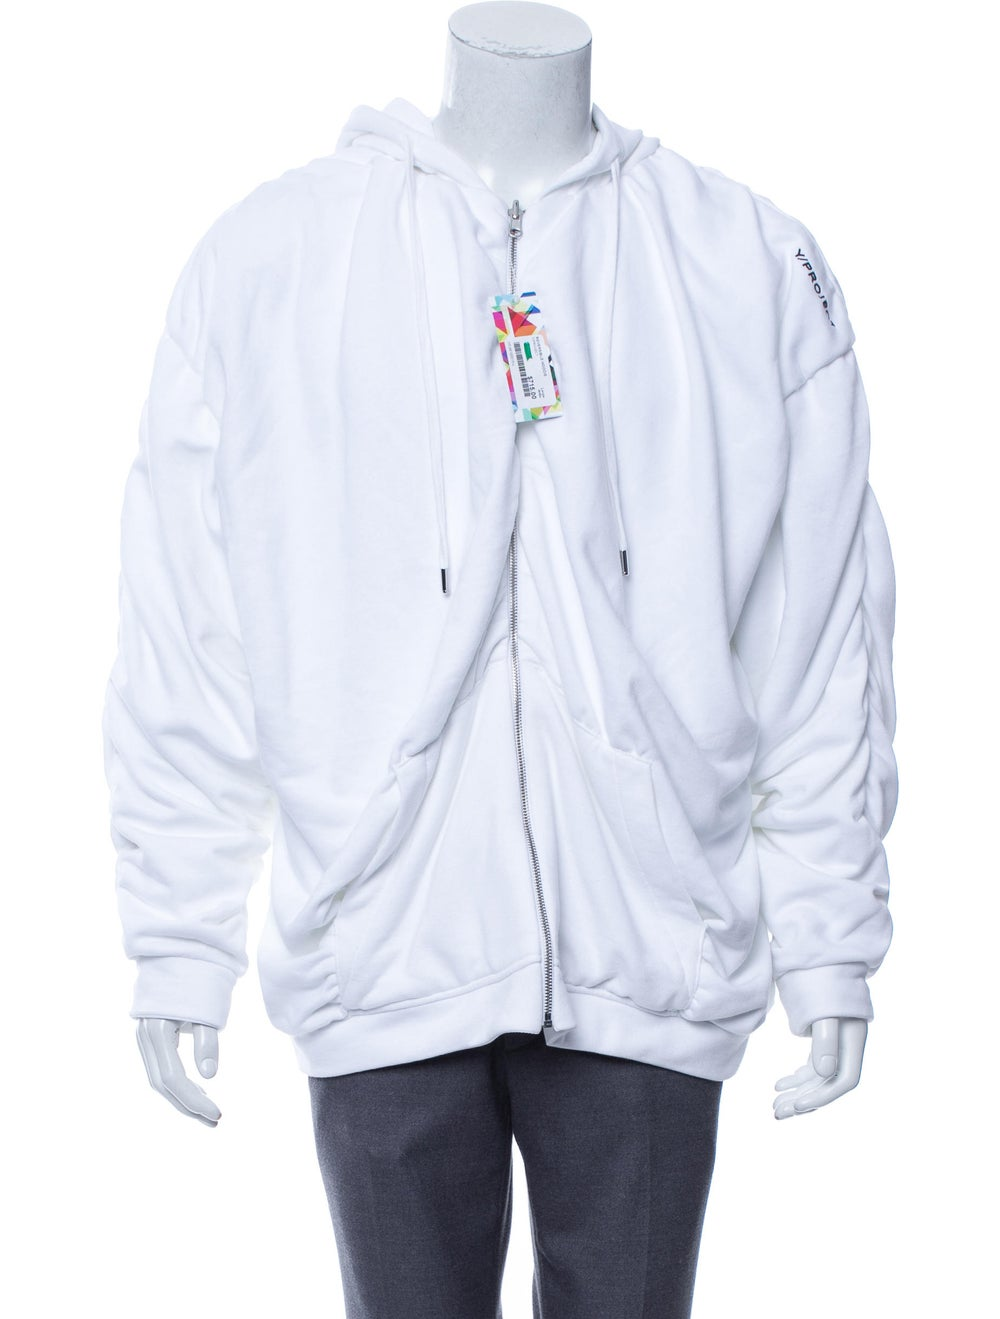 Y/Project 2019 Reversible Hoodie white - image 1